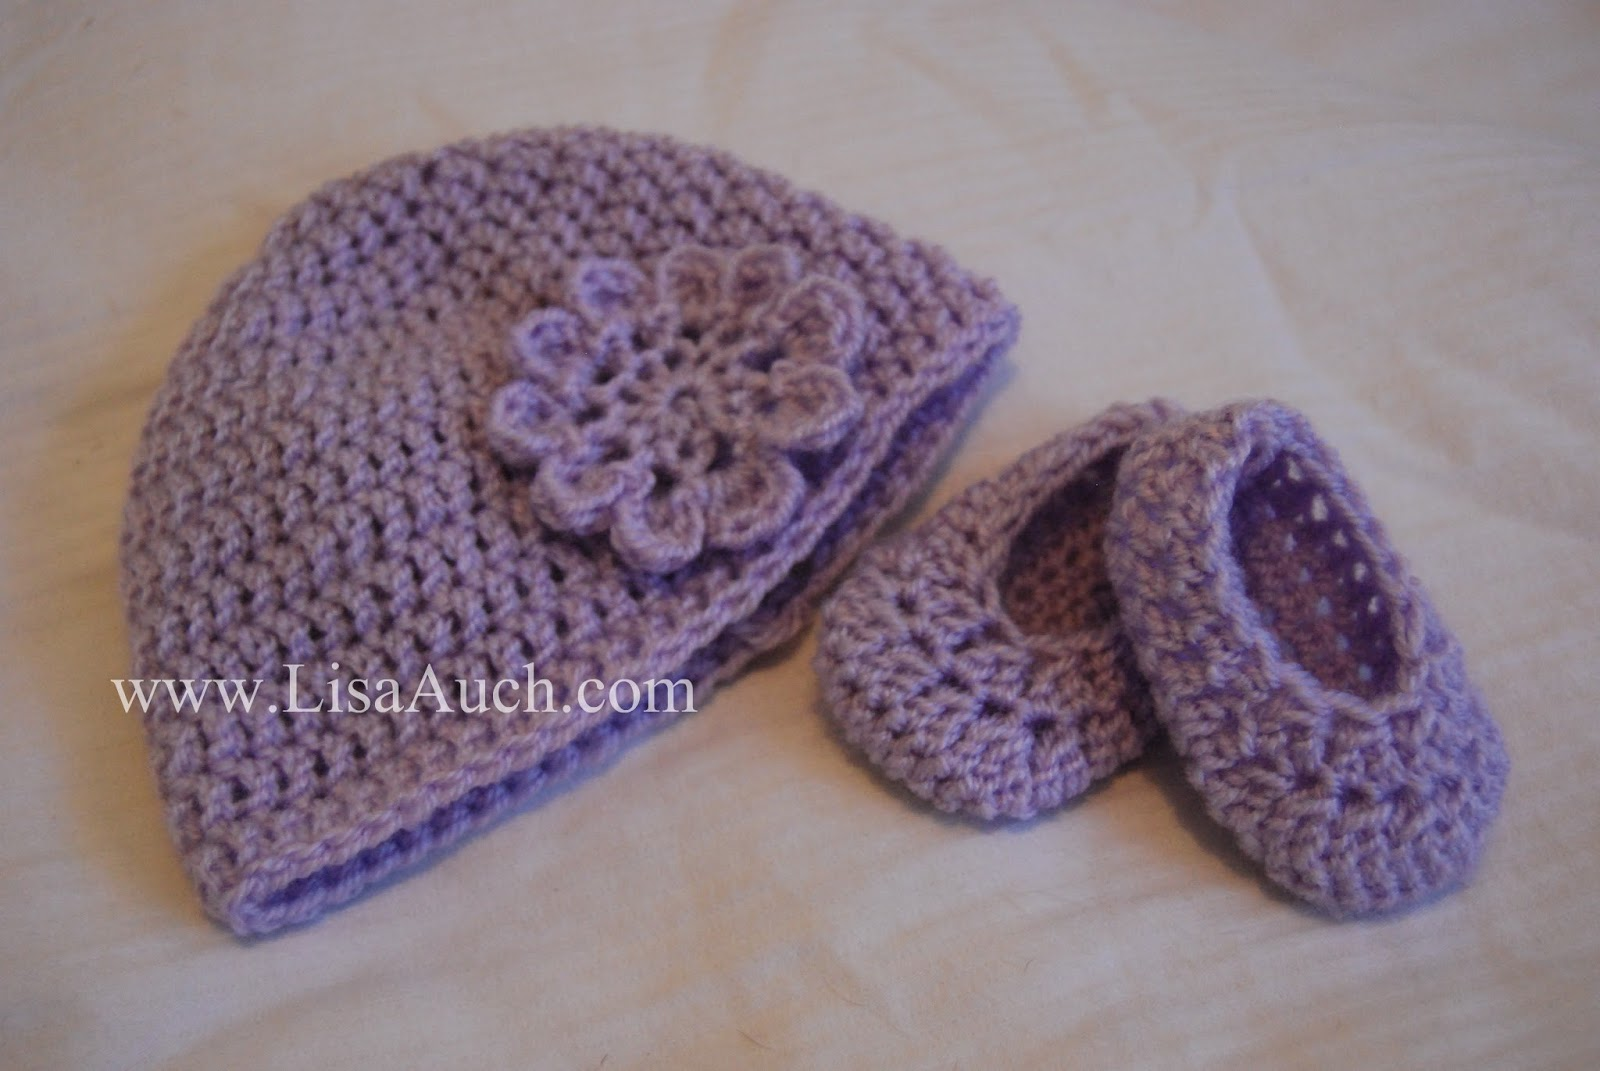 Crochet Baby Hat Booties Patterns Free : free crochet pattern-baby crochet hat pattern-crochet baby ...